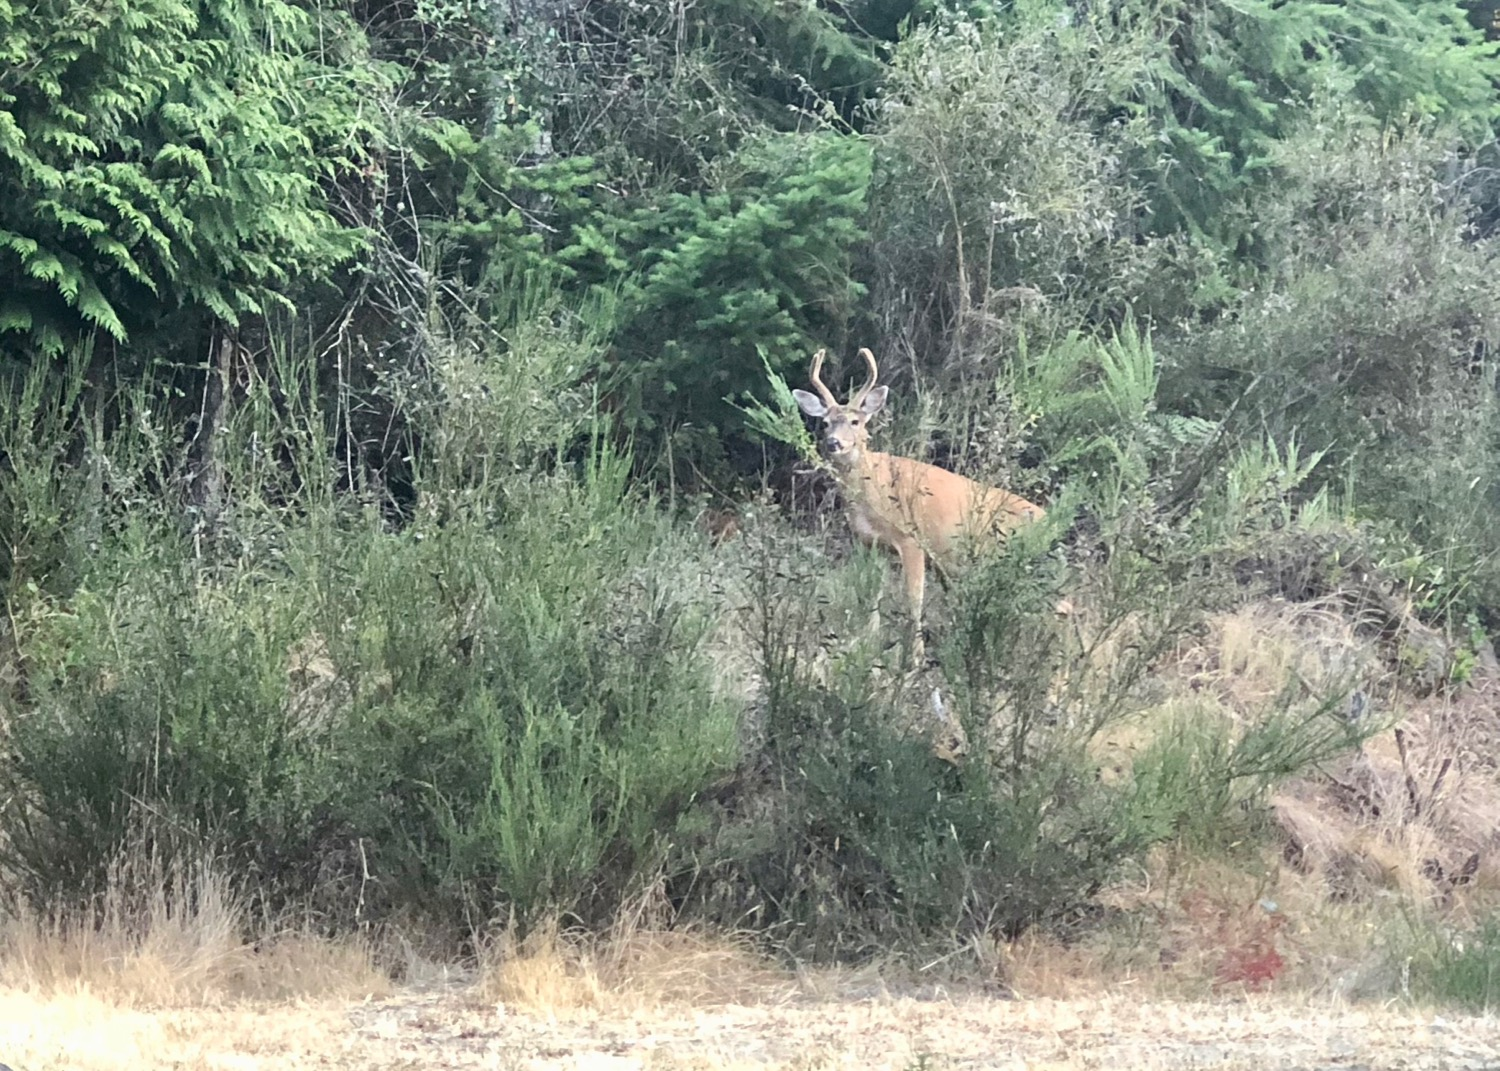 This little buck was right at the front entrance to the golf course - no fear at all.